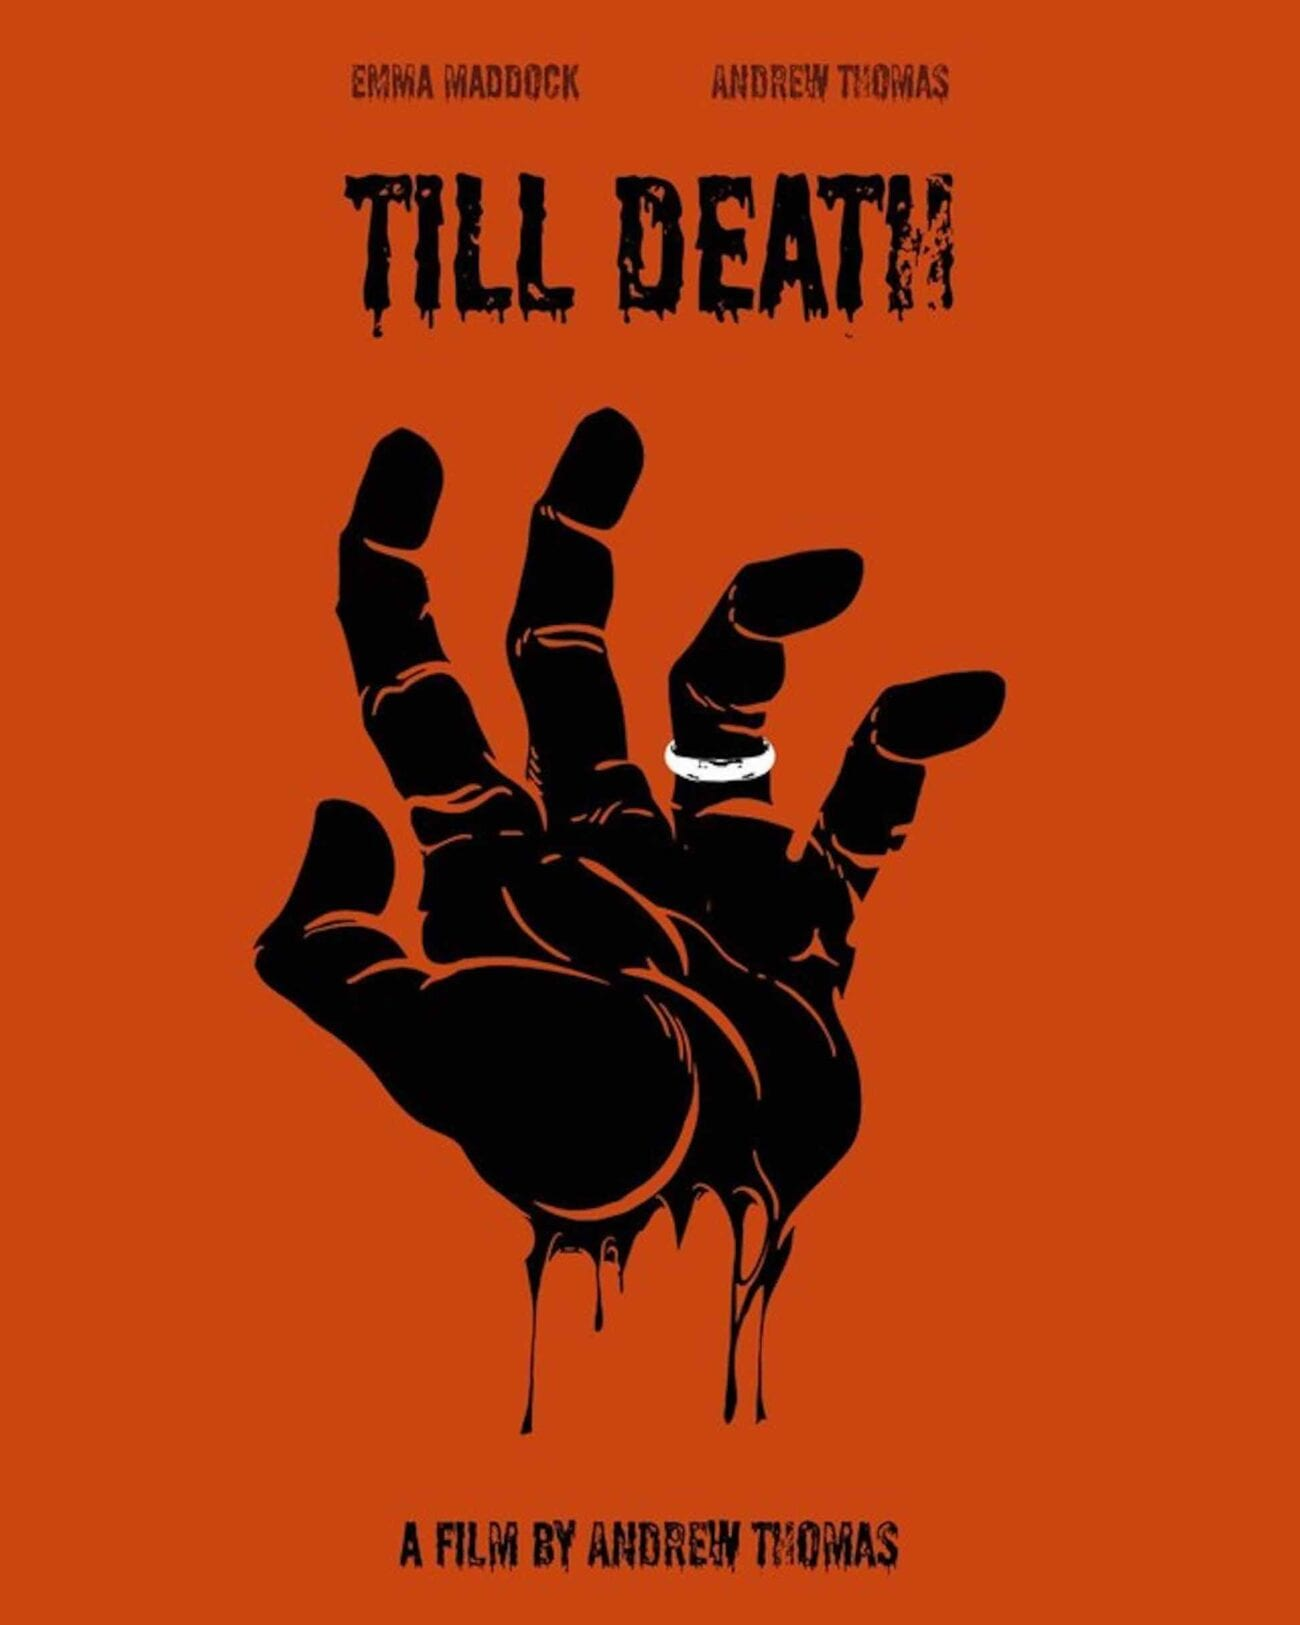 'Till Death' is the latest project coming from filmmaker Andrew Thomas. Here's everything you need to know about 'Till Death'.